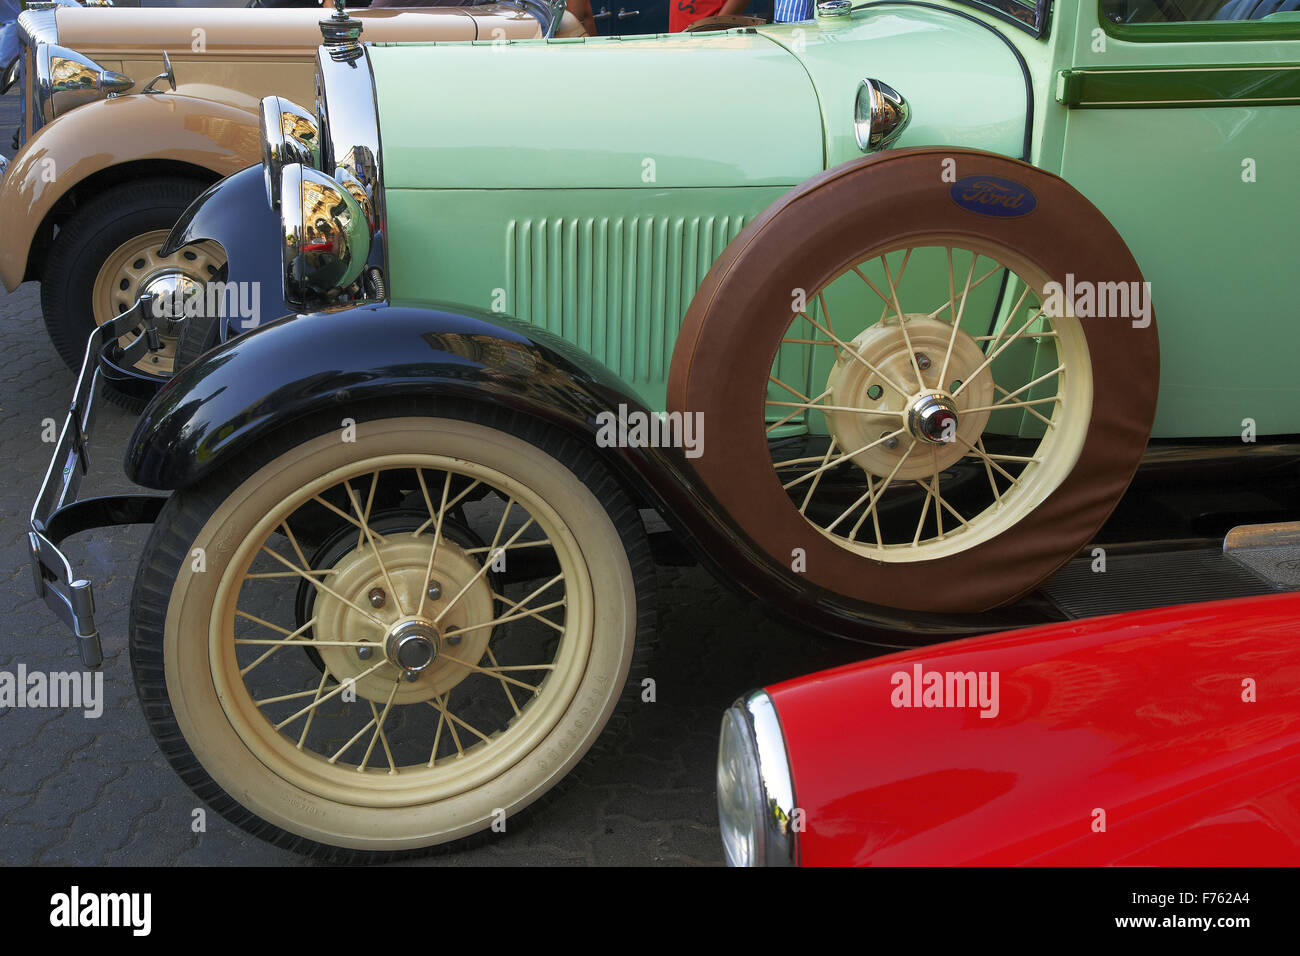 Vintage car ford, india, asia - Stock Image